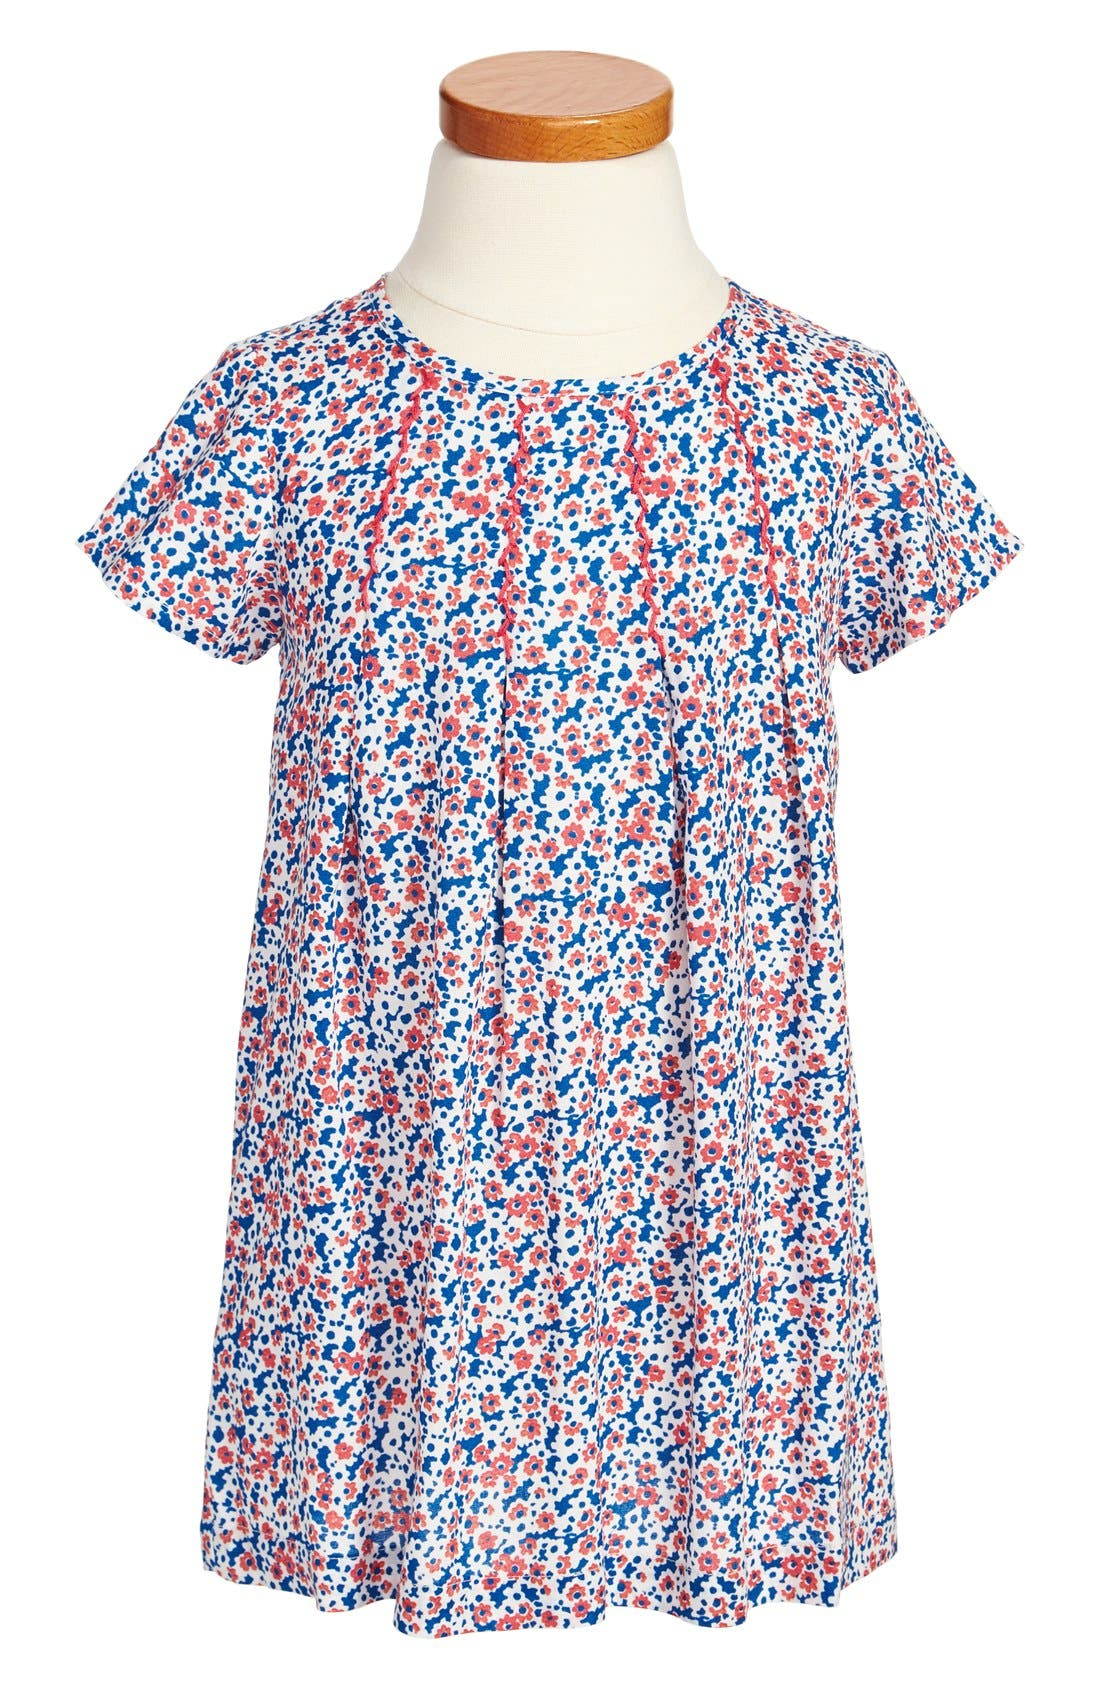 Alternate Image 1 Selected - Tucker + Tate 'Patricia' Pleated Print Dress (Little Girls & Big Girls)